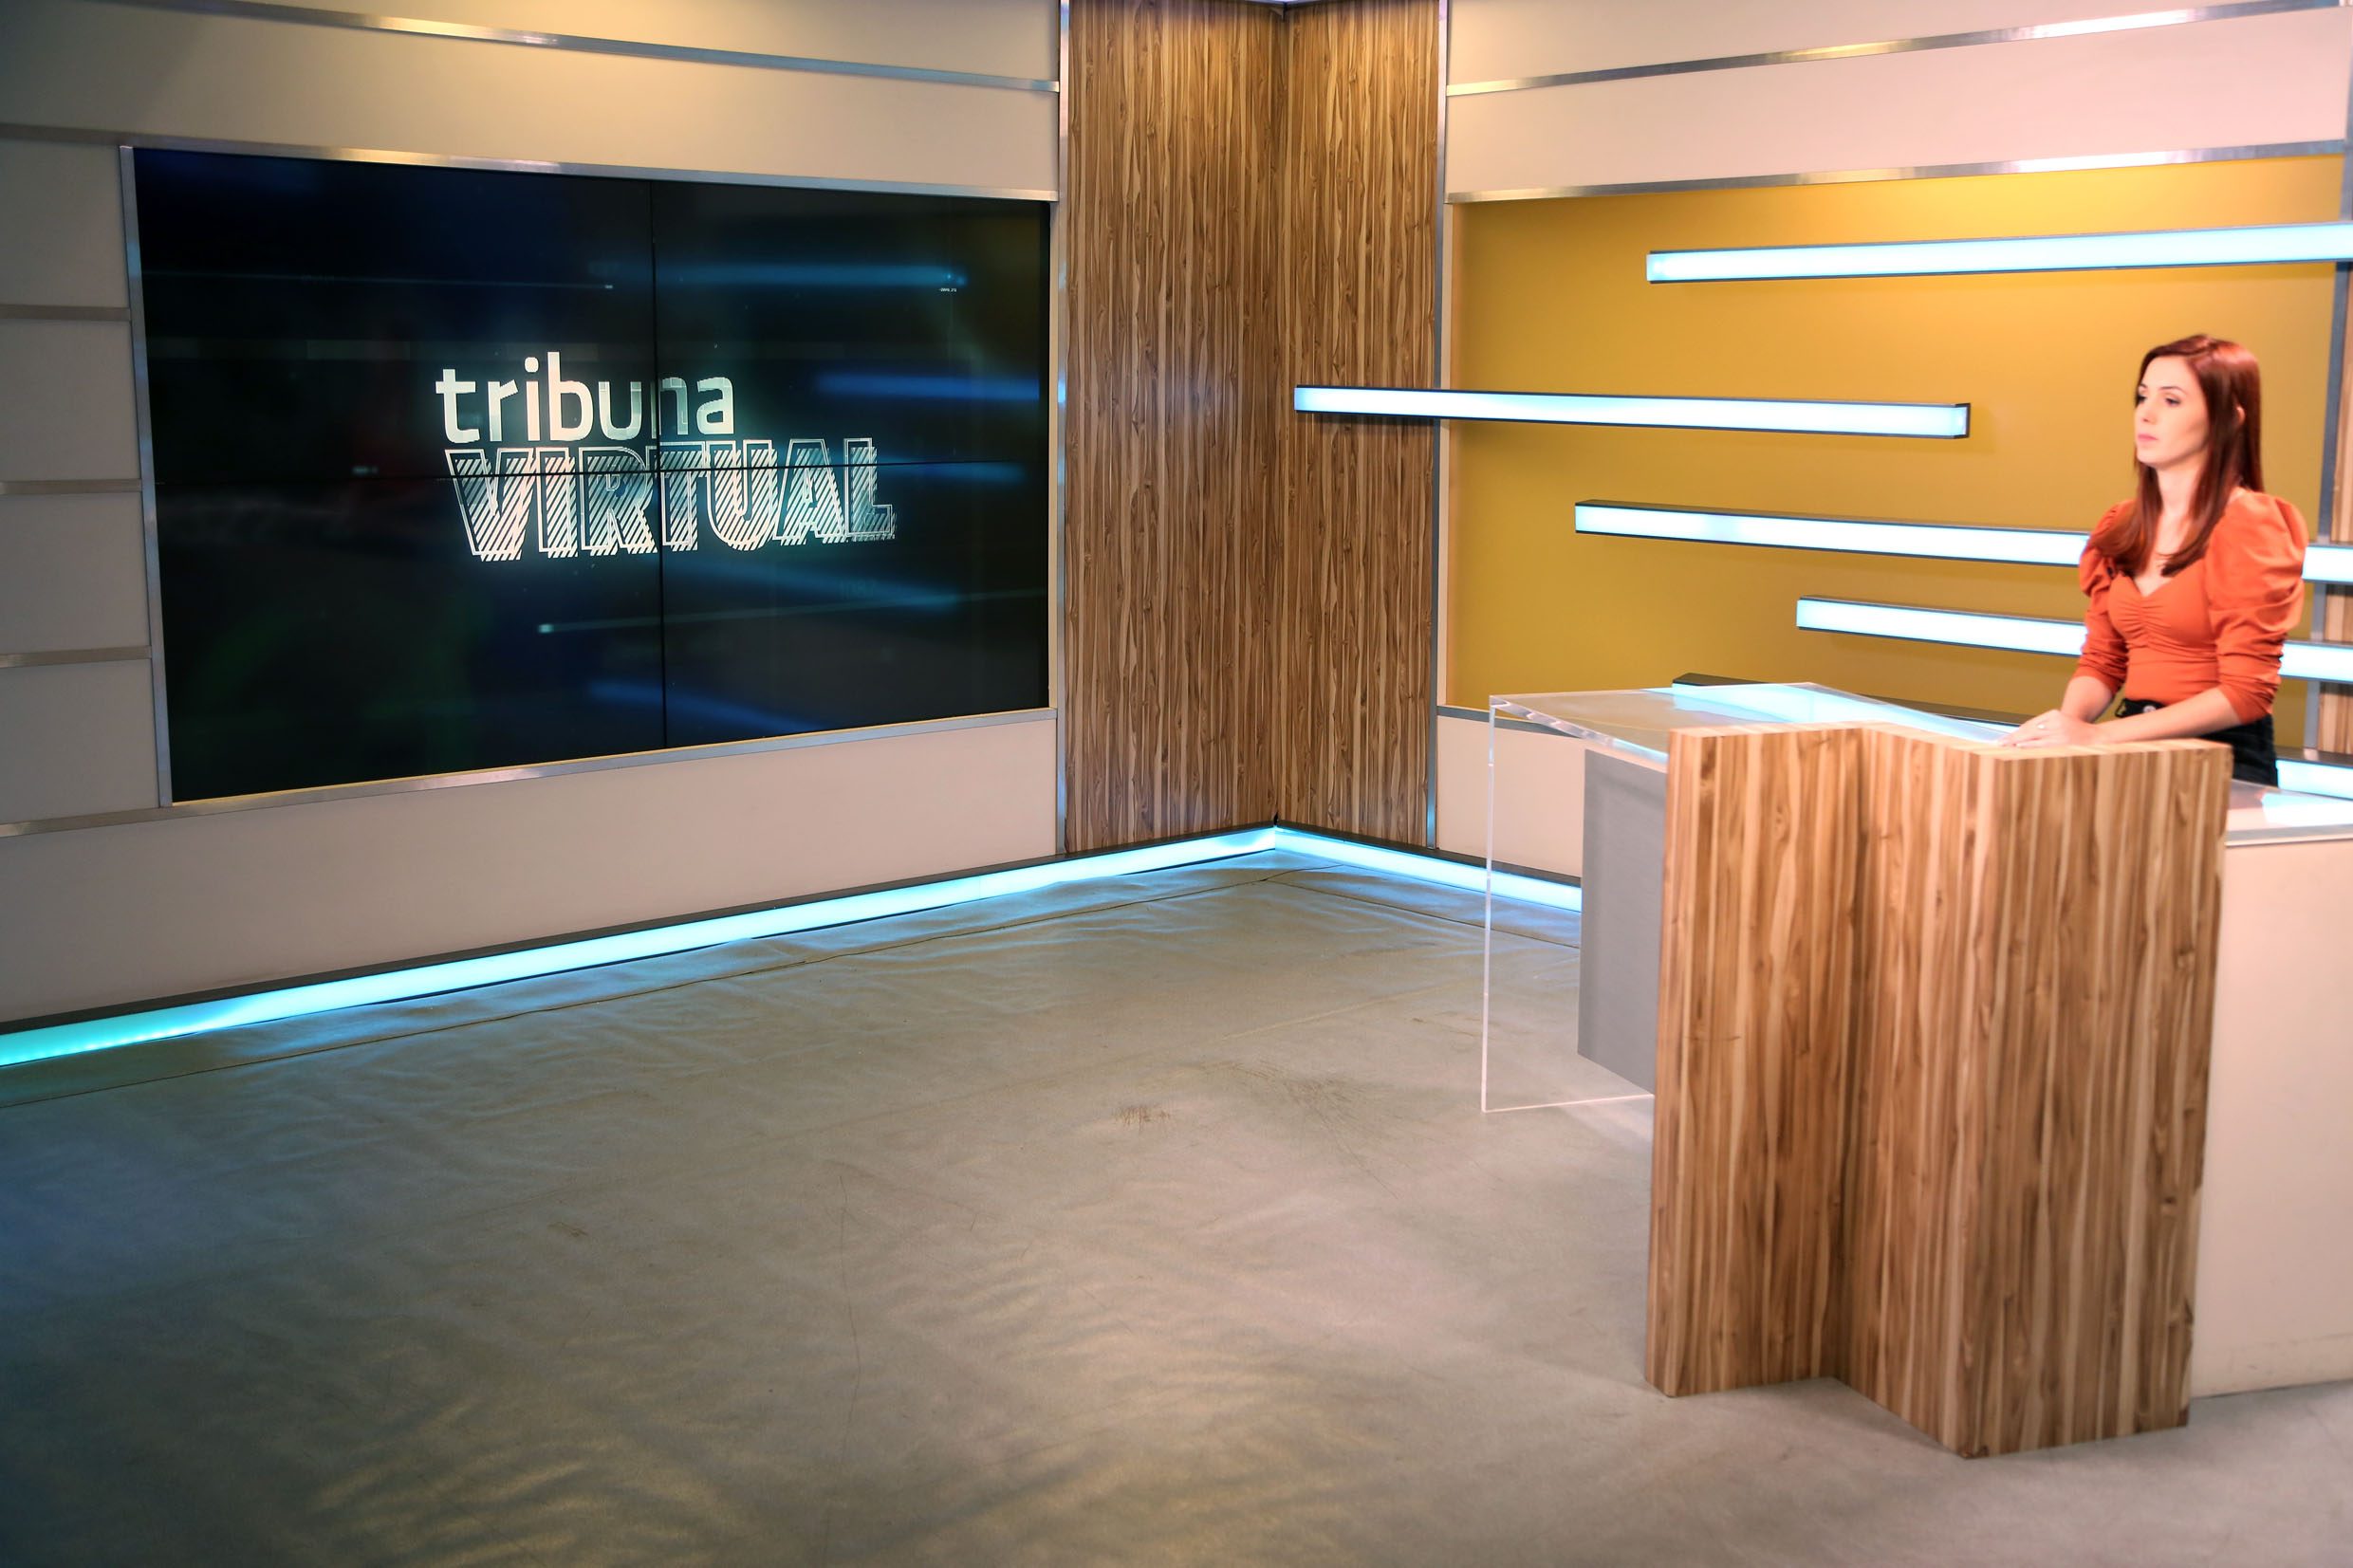 Tribuna Virtual<a style='float:right' href='https://www3.al.sp.gov.br/repositorio/noticia/N-04-2020/fg248454.jpg' target=_blank><img src='/_img/material-file-download-white.png' width='14px' alt='Clique para baixar a imagem'></a>